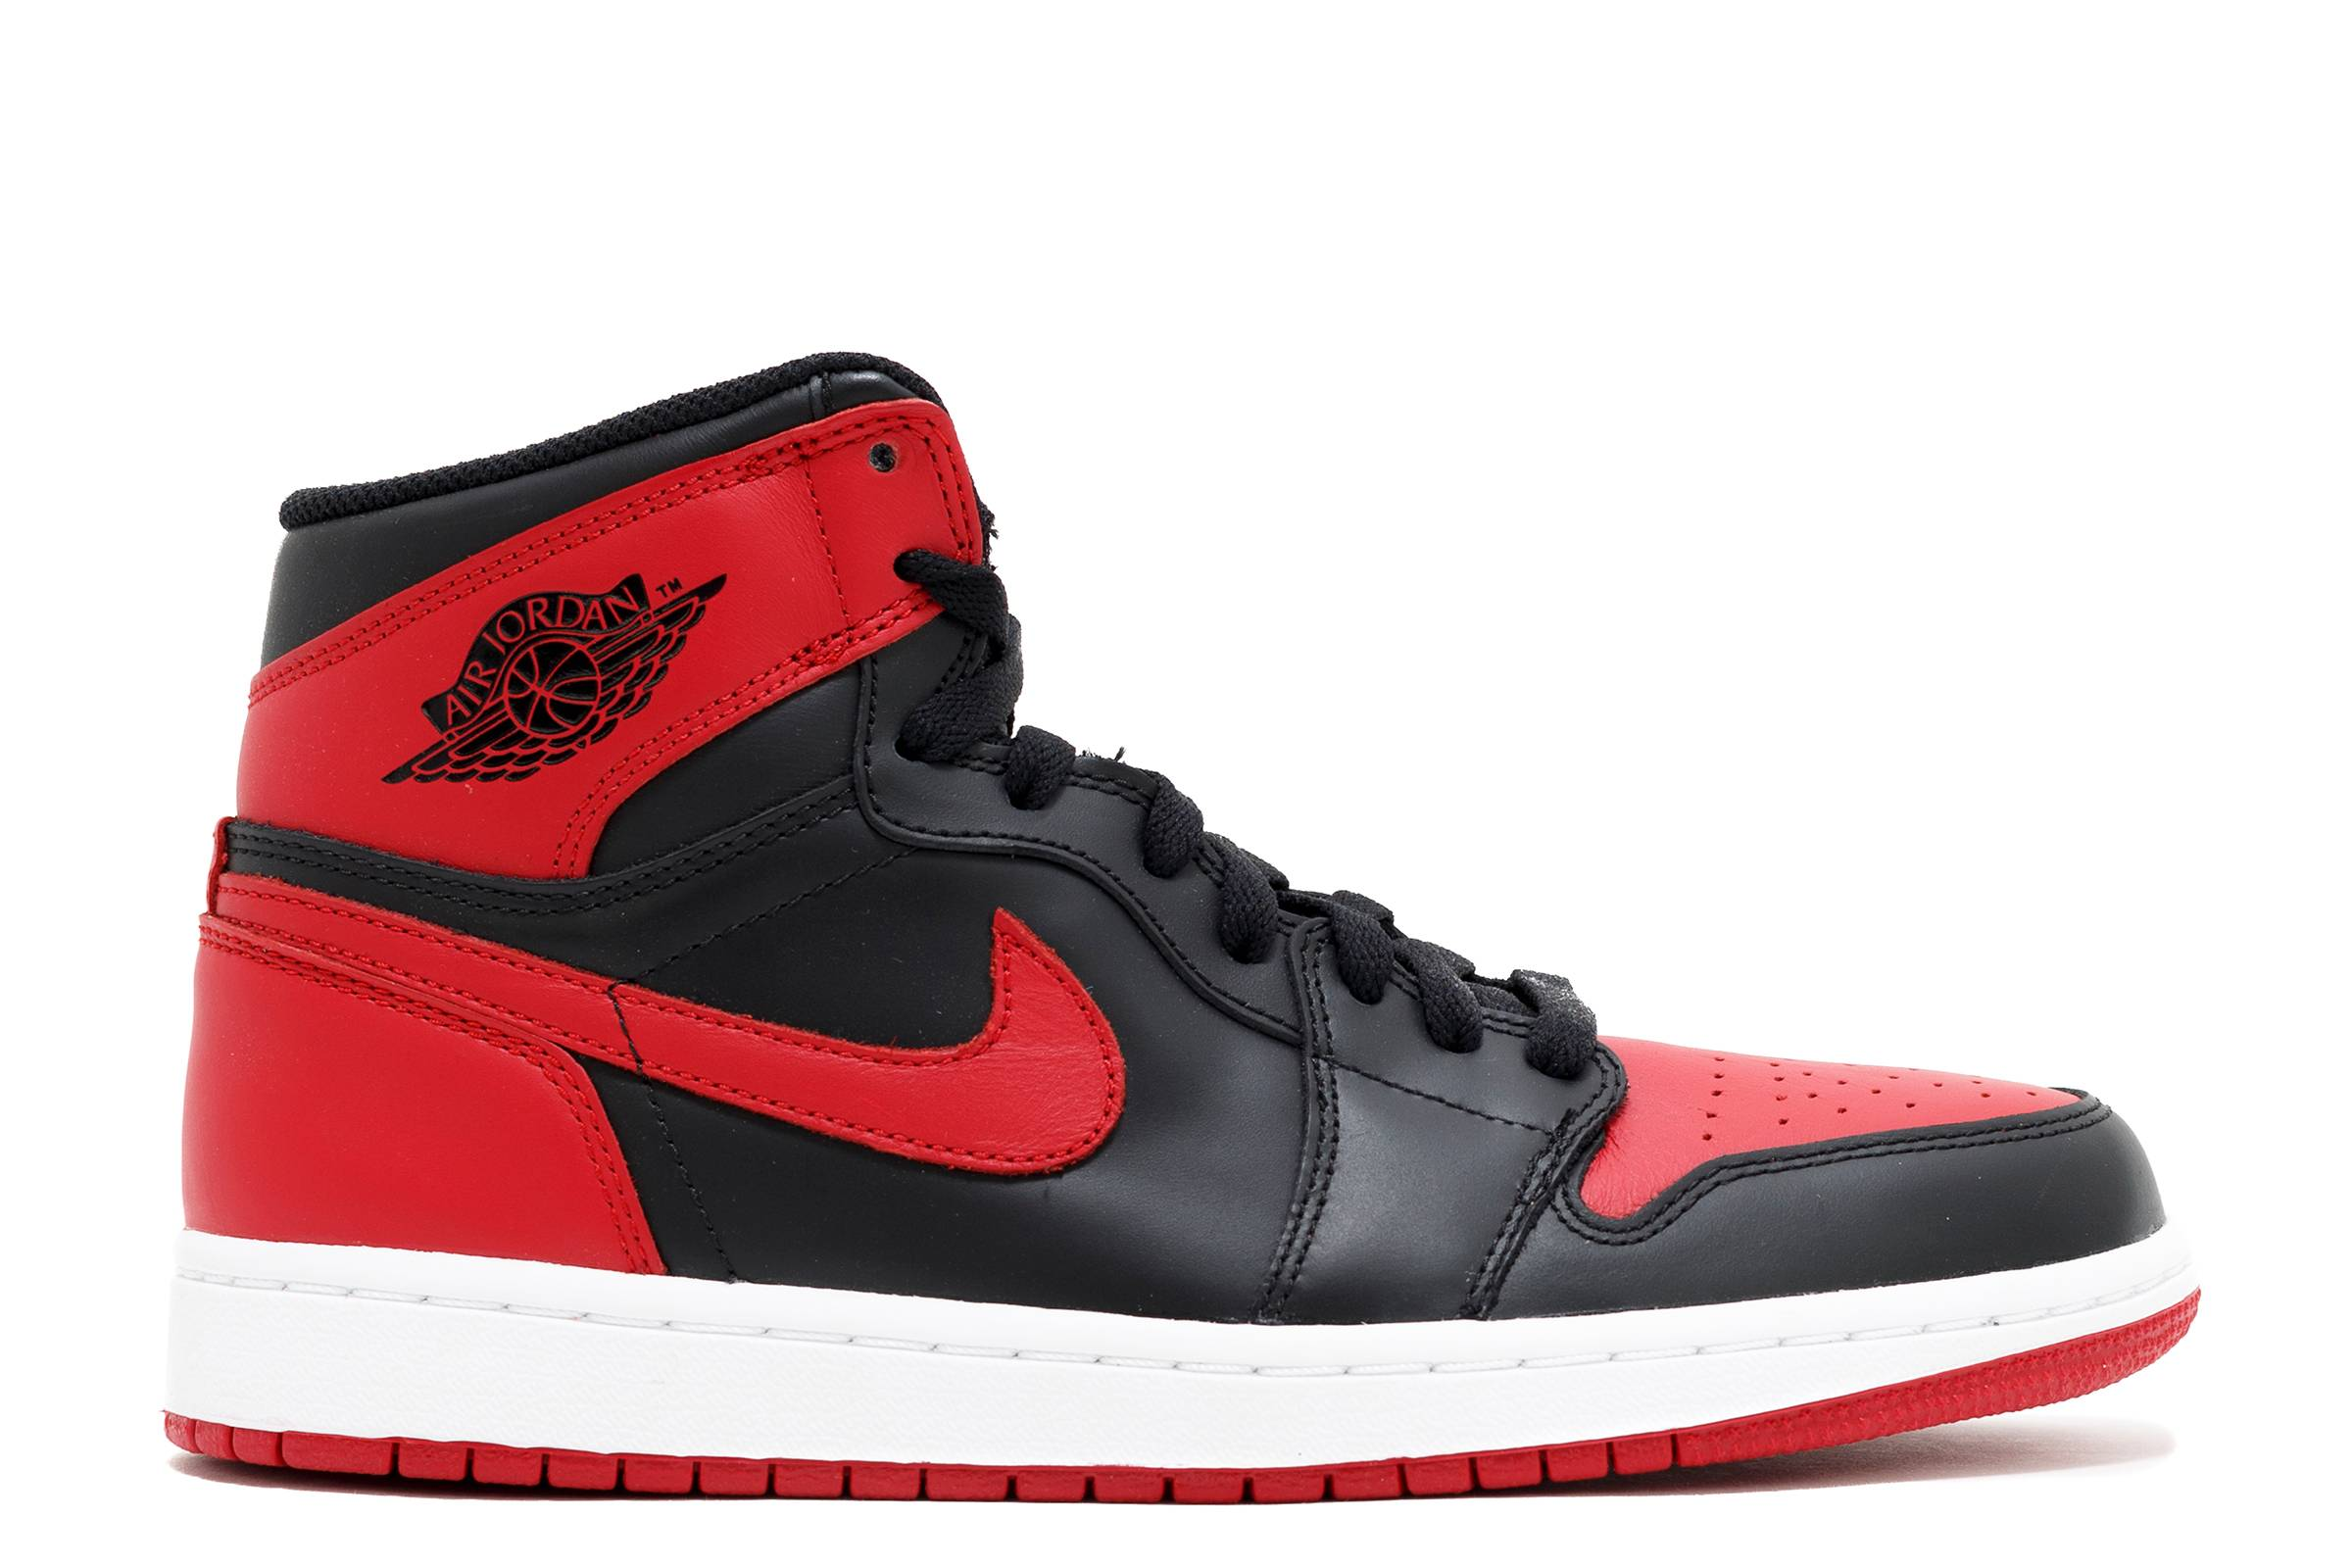 new product 49fd6 c238a The One That Started It All: A History of the Jordan 1 - Jordan 1 ...